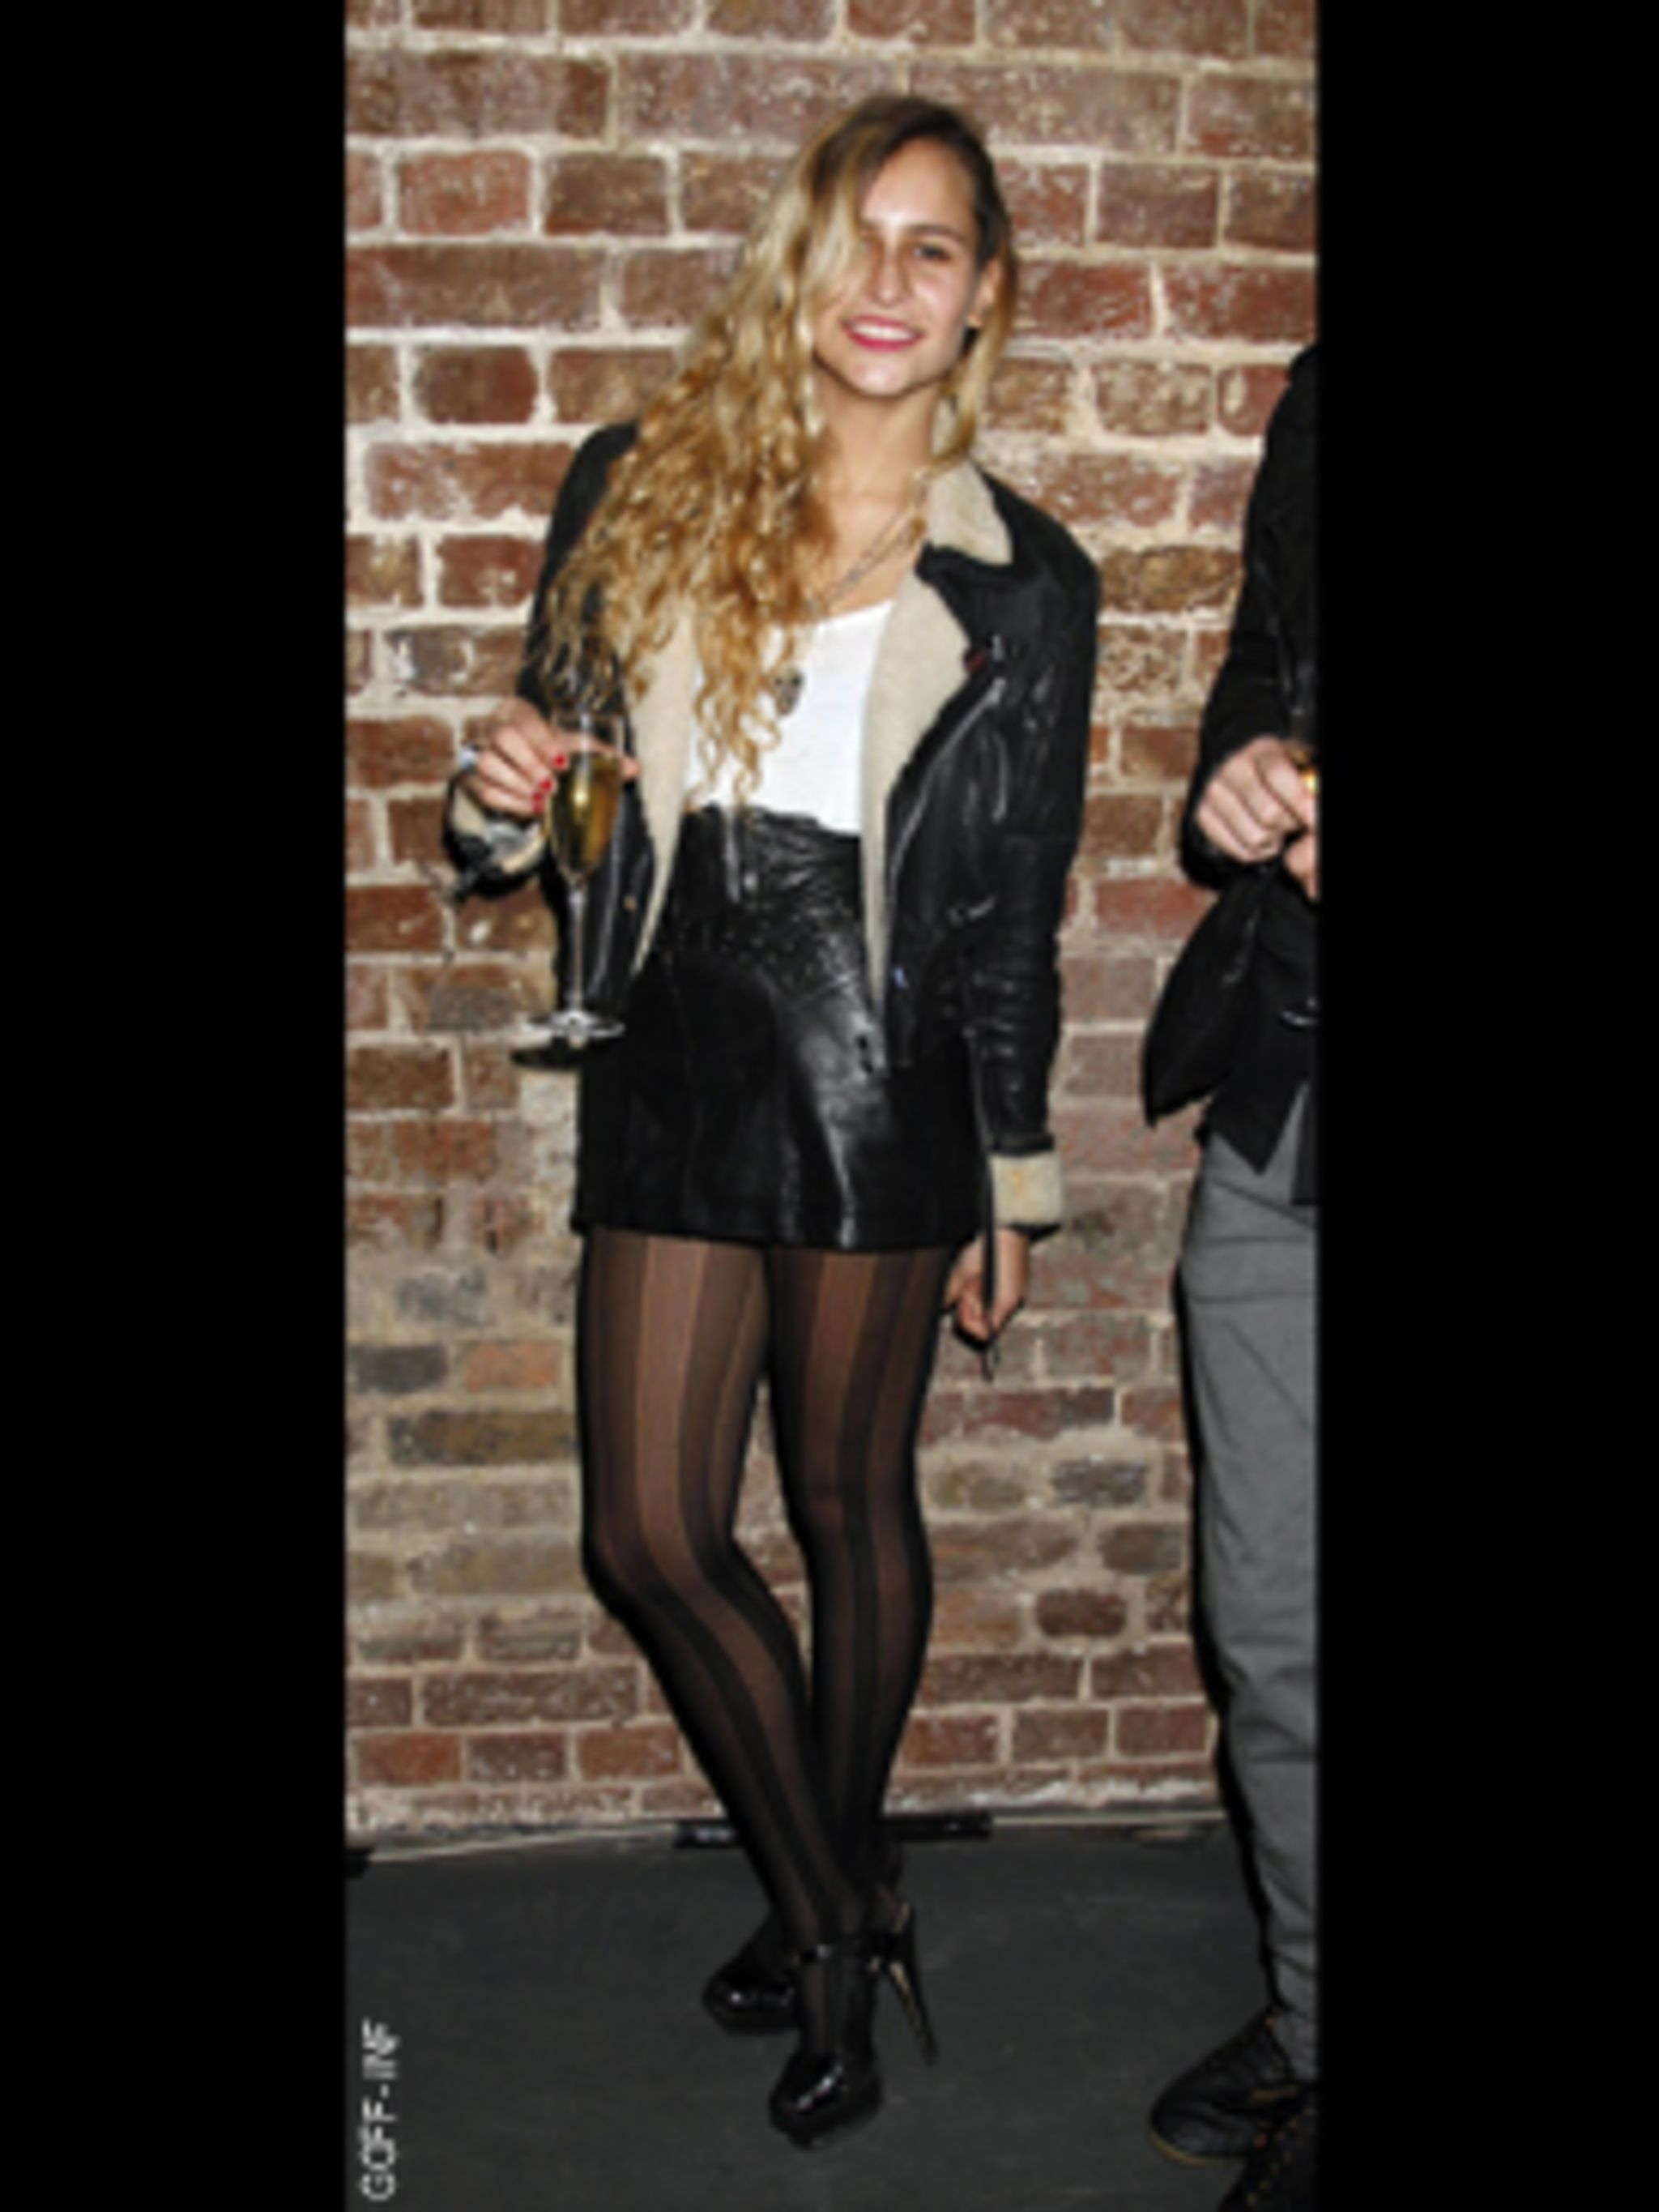 <p>Daughter of Brazillian model Andrea Dellal, Alice is famous for her edgy rebellious looks - in particular her half shaved head. She'a already been shot by Mario Testino for French Vogue and is said to be dating Pierre Casiraghi of Monaco. She's the new